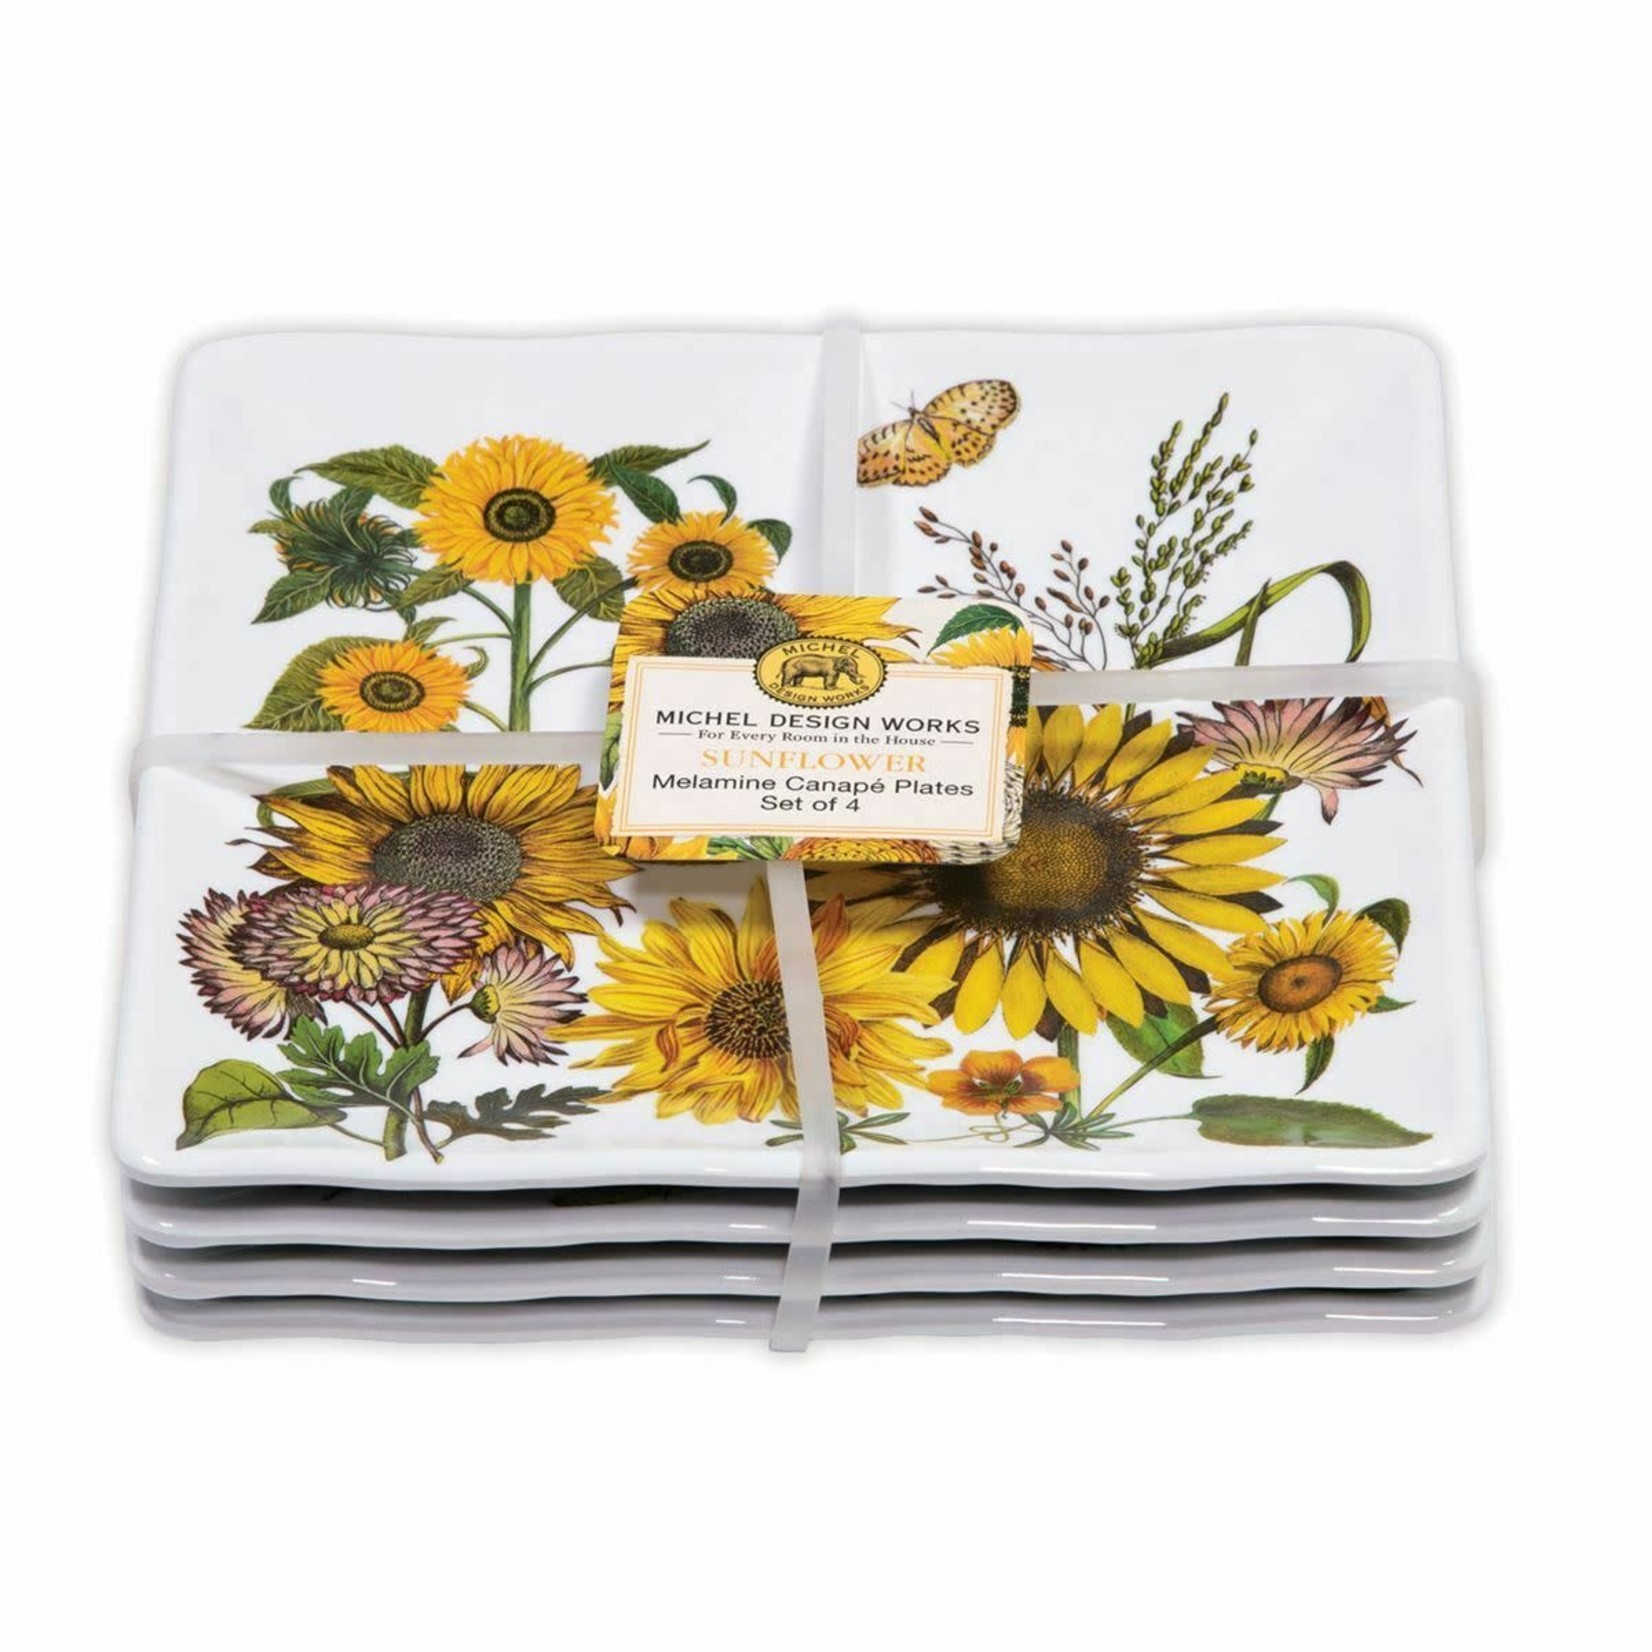 Michel Design Works Sunflower Melamine Set of 4 Canape Plates